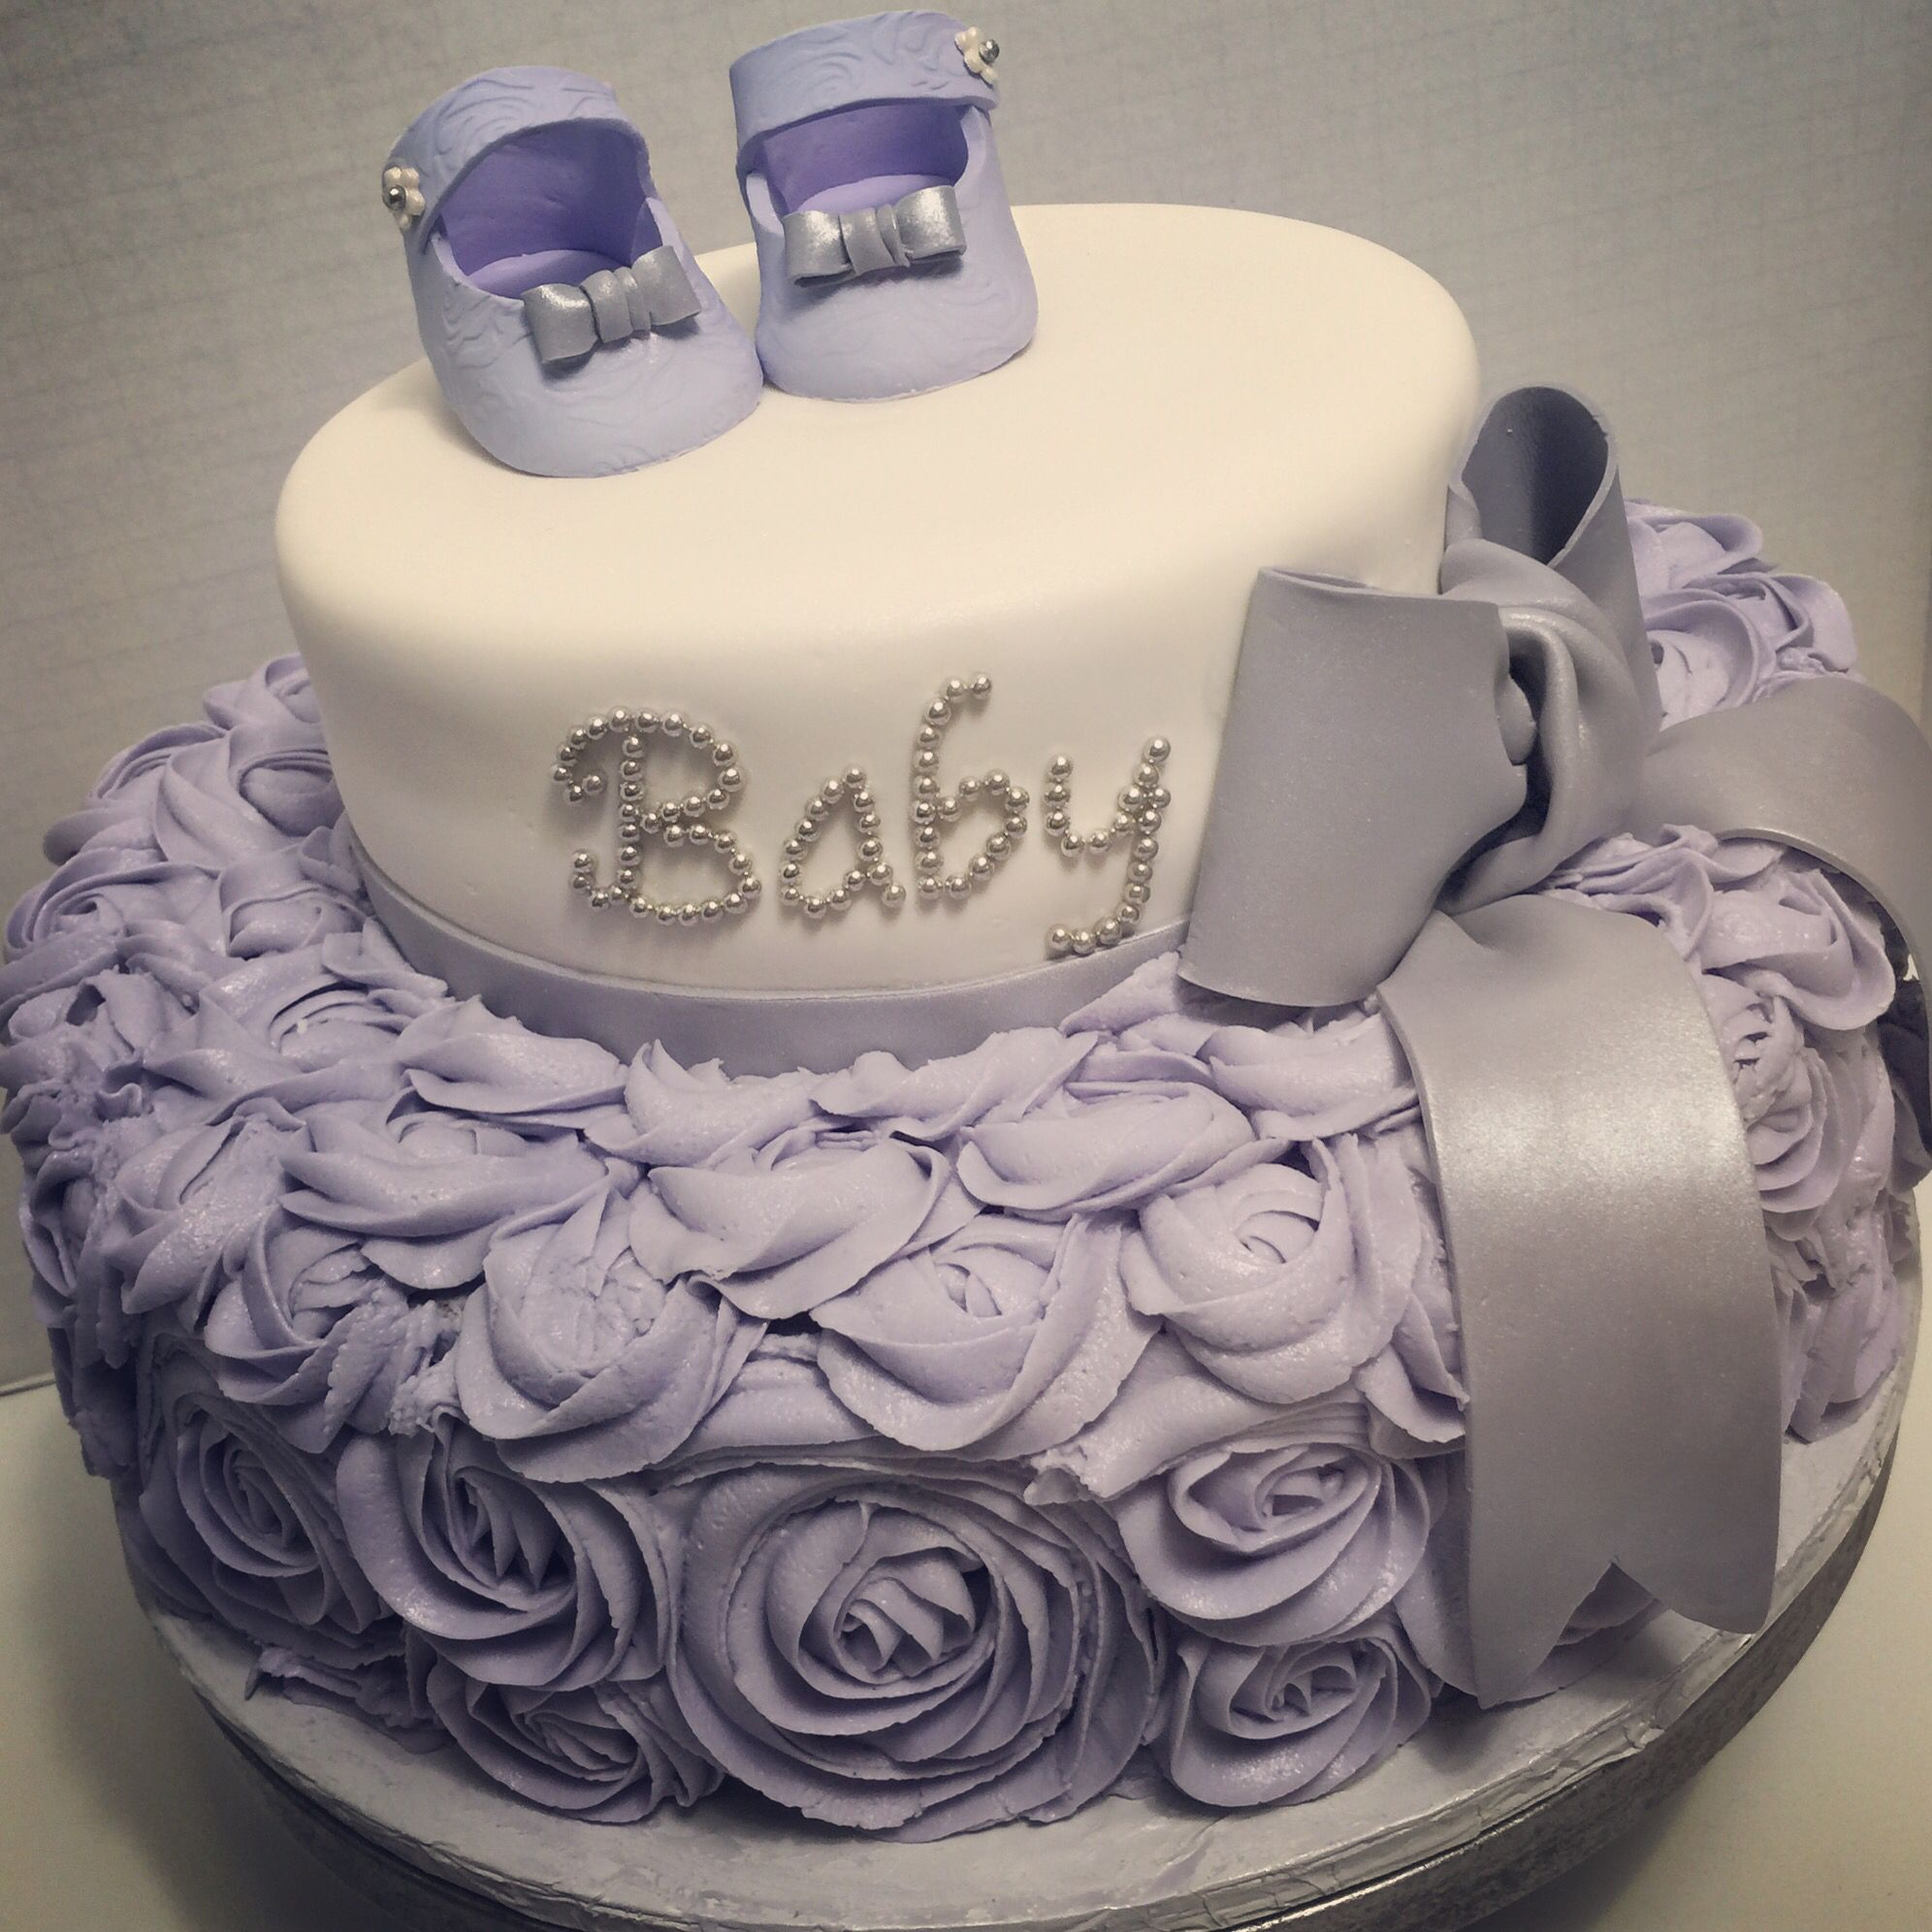 187ab75f7706a Lilac or lavender baby shower cake for girl. Baby shoes, bow, and ...